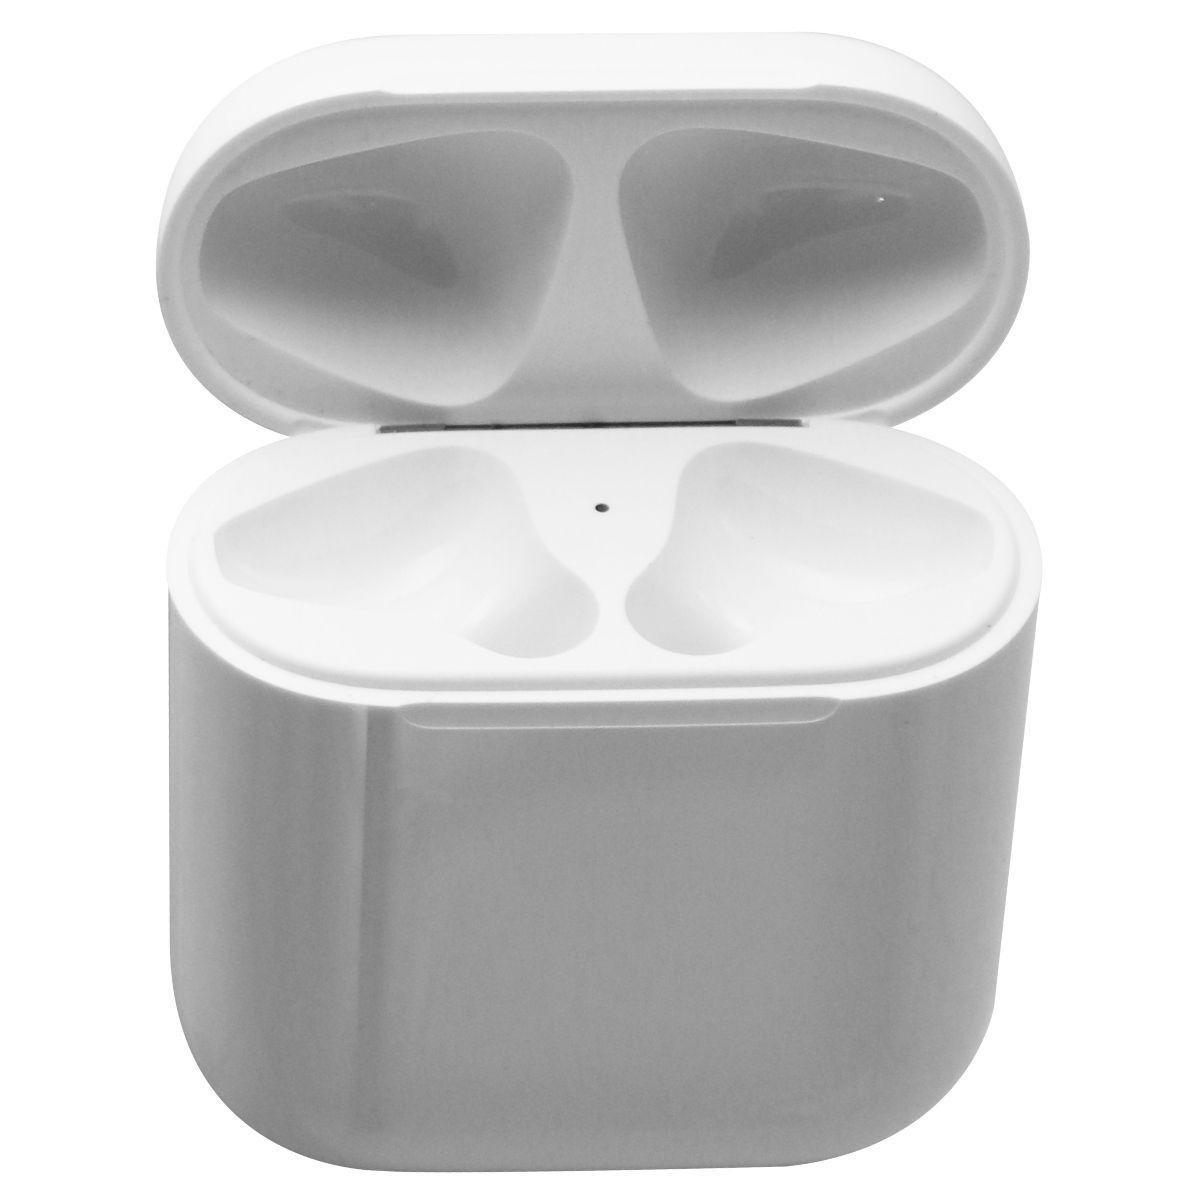 airpods 1st gen charging case